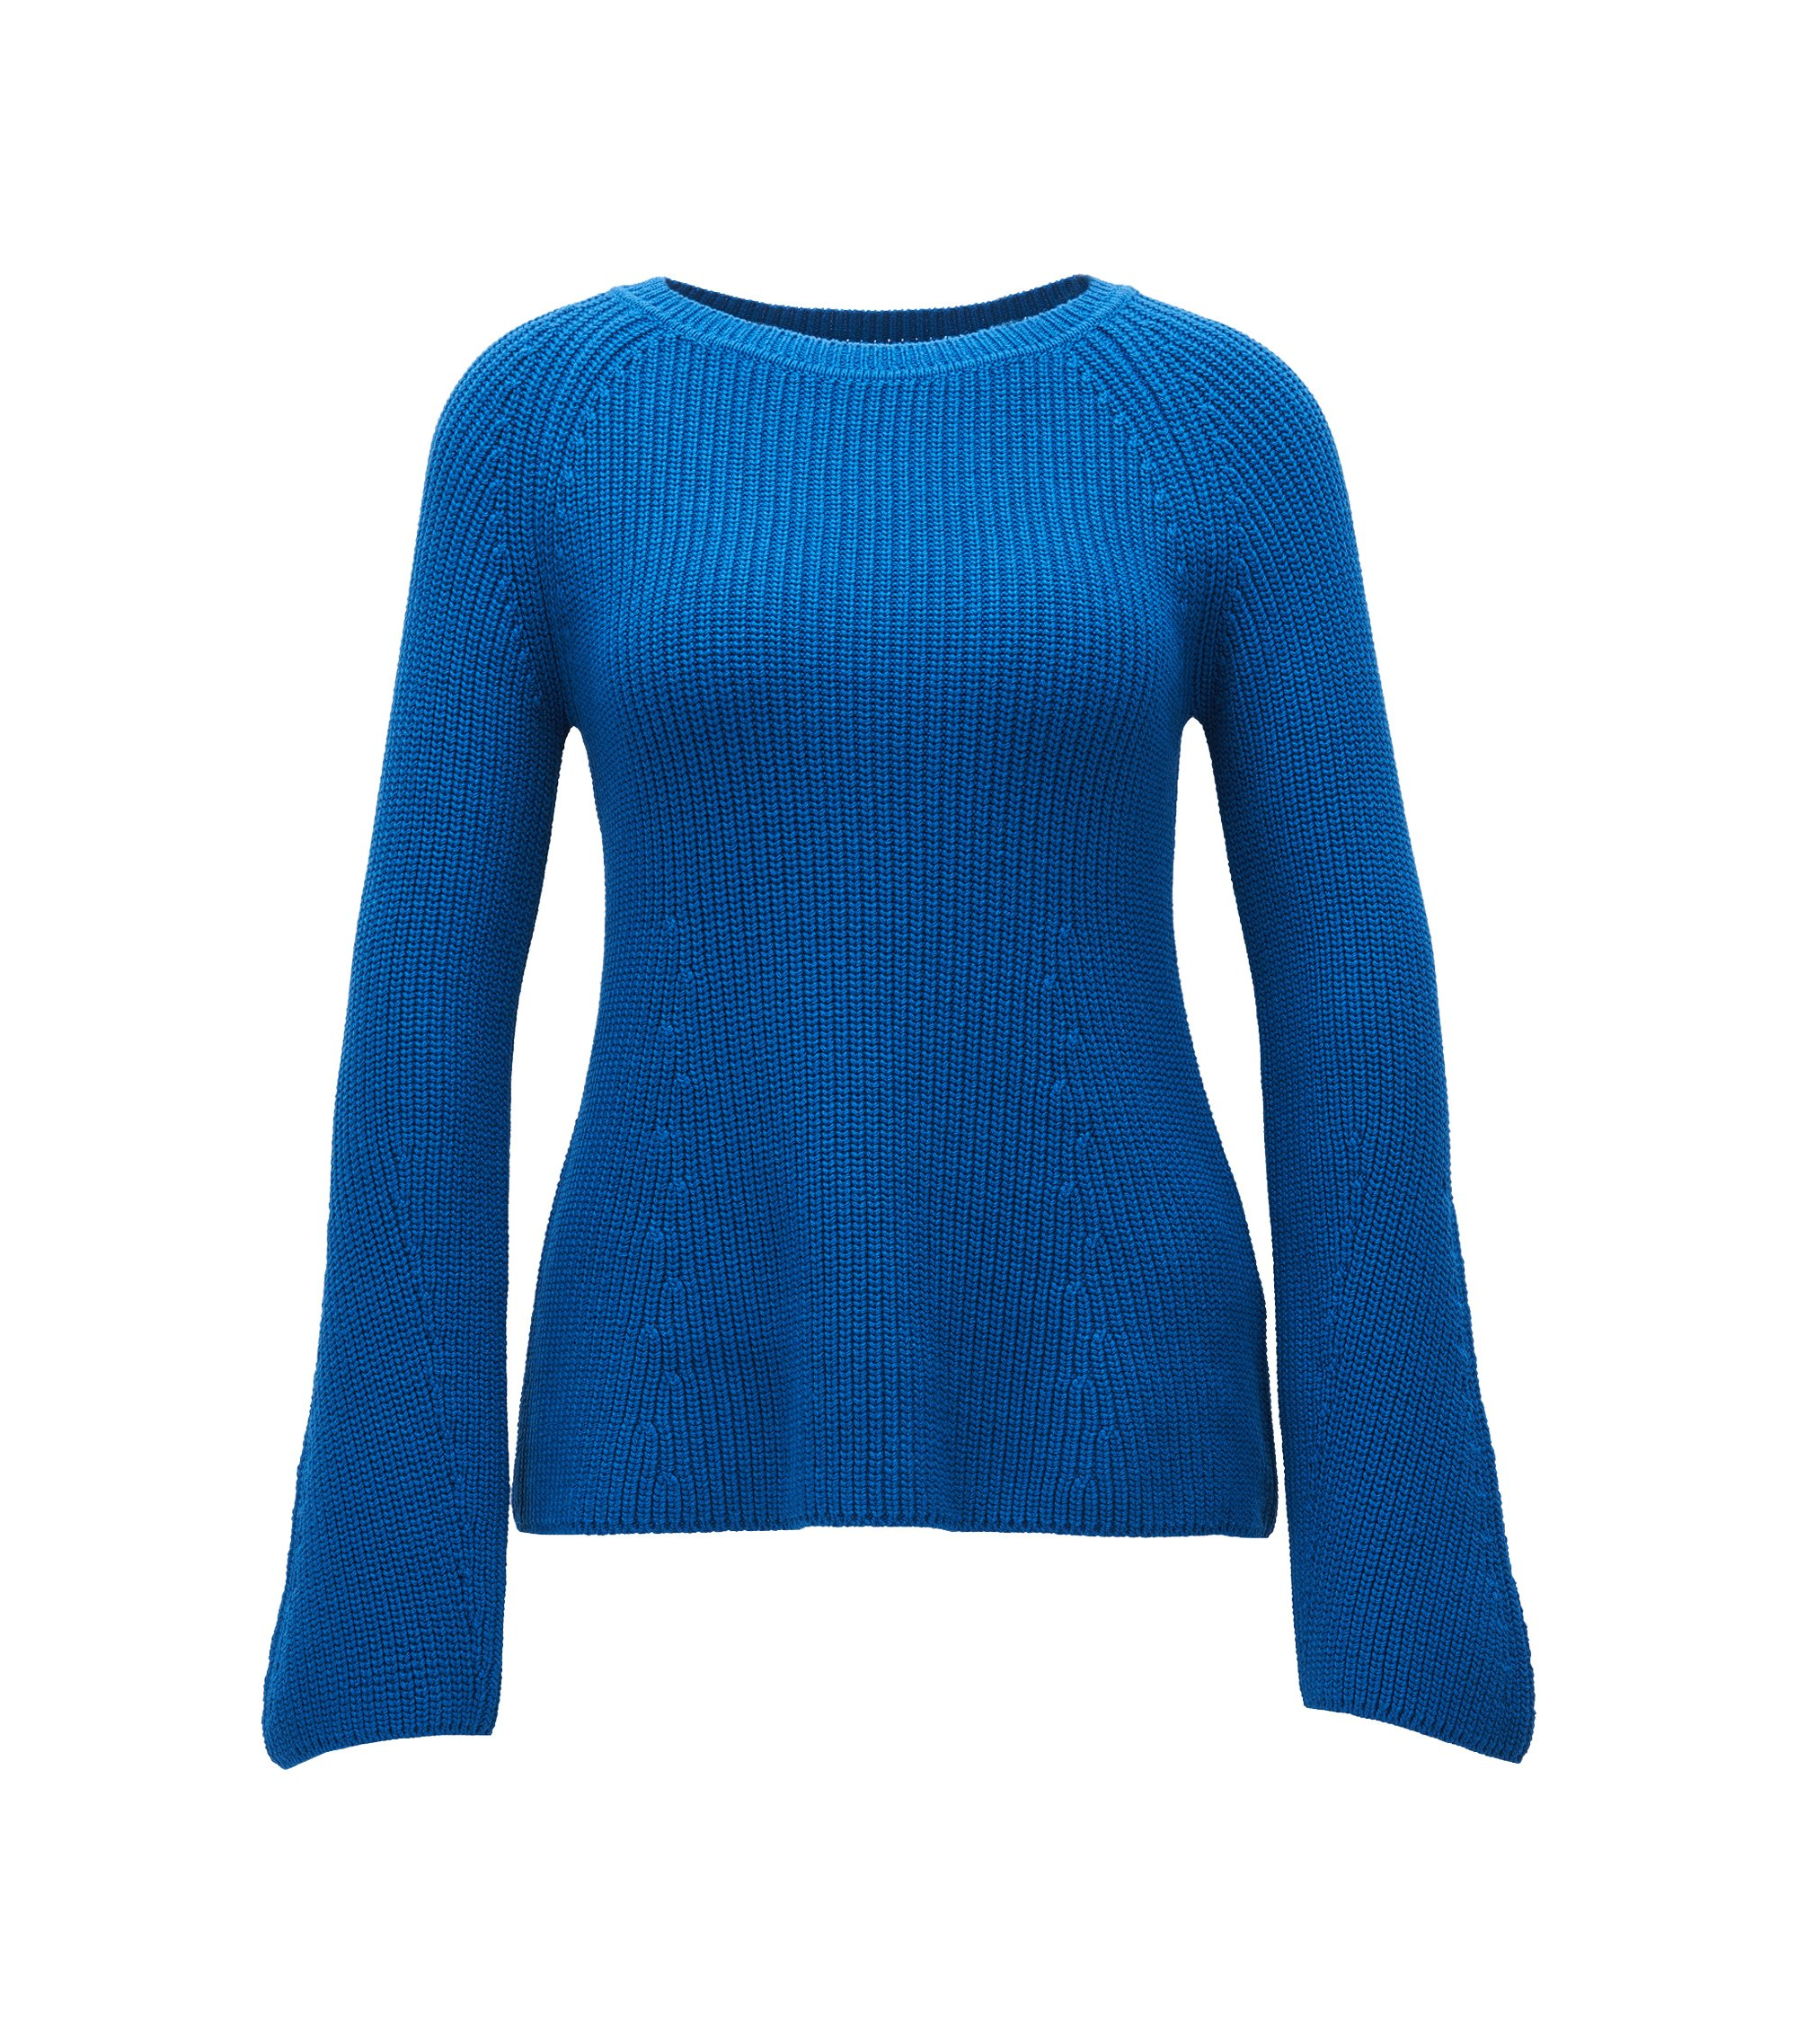 Cotton Blend Rib-Knit Sweater | Foya, Blue